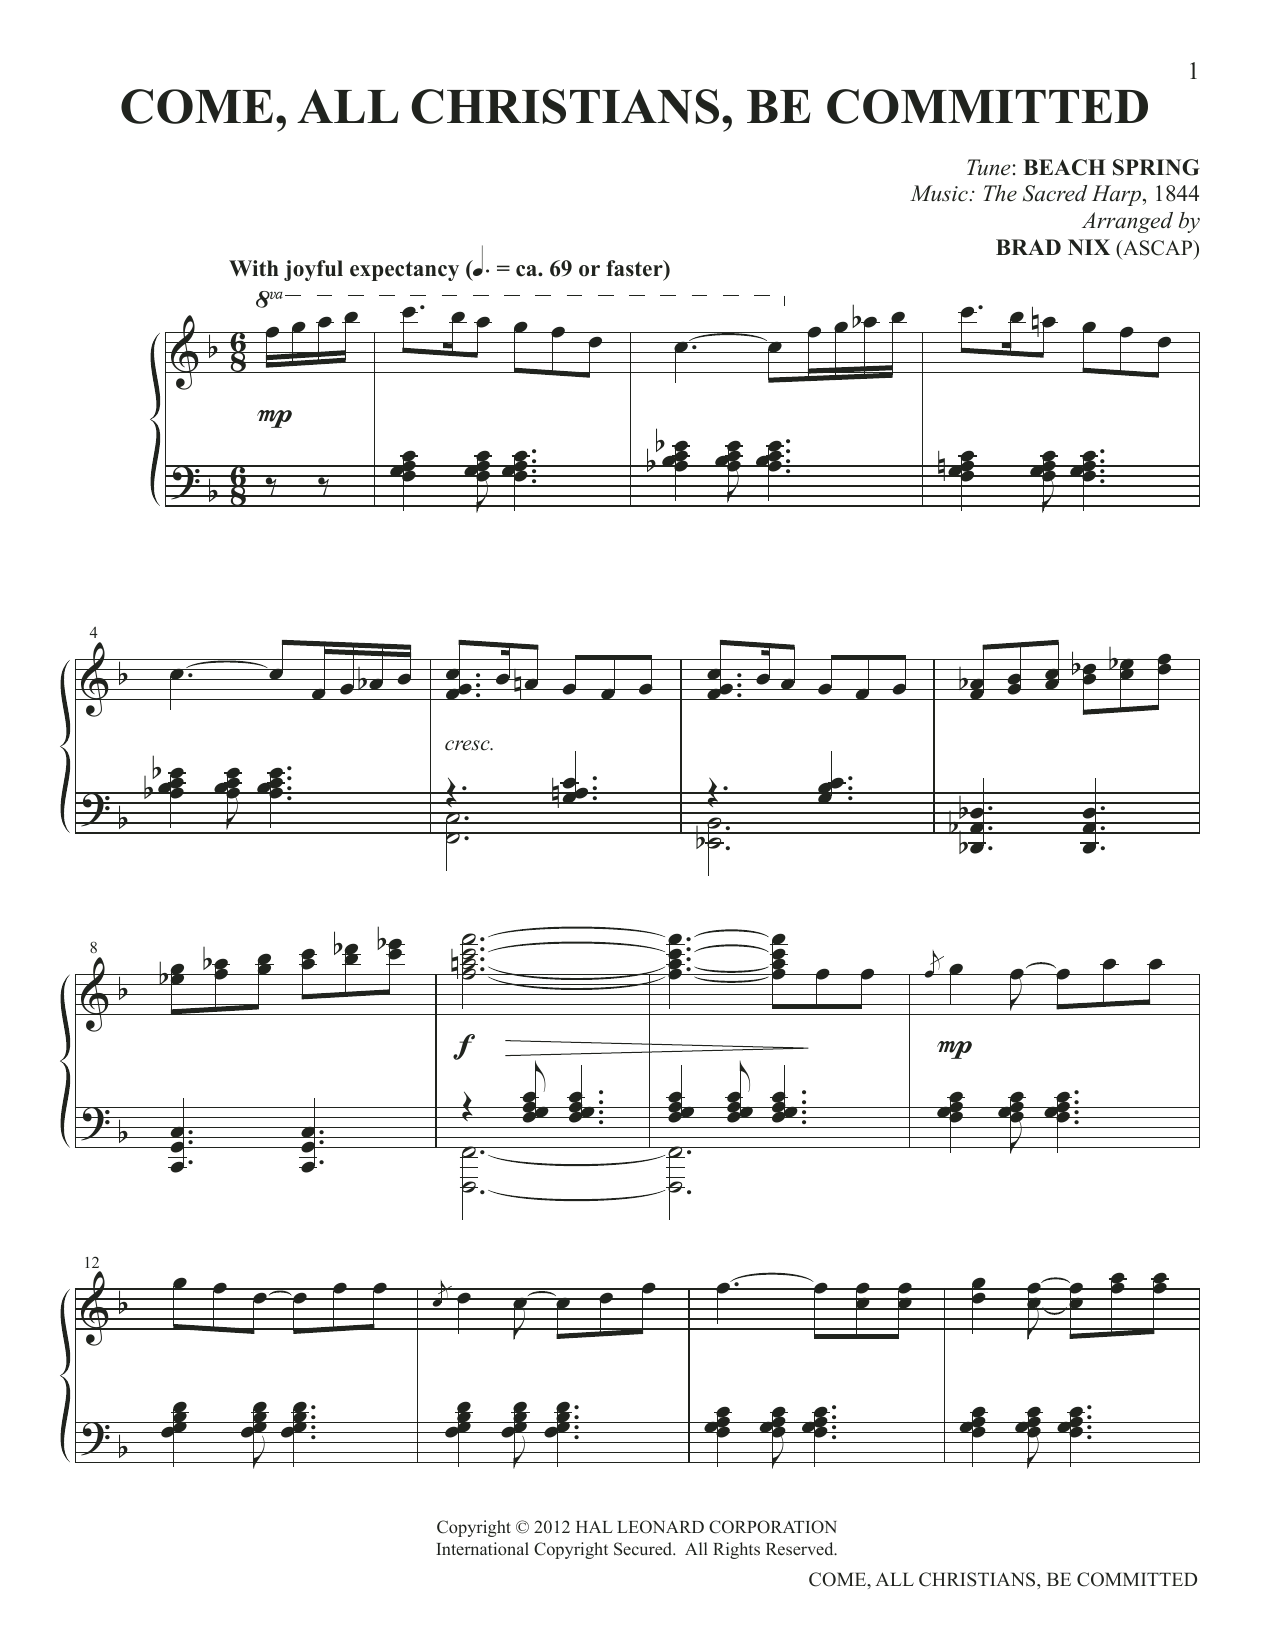 Come, All Christians, Be Committed (arr. Brad Nix) (Piano Solo)